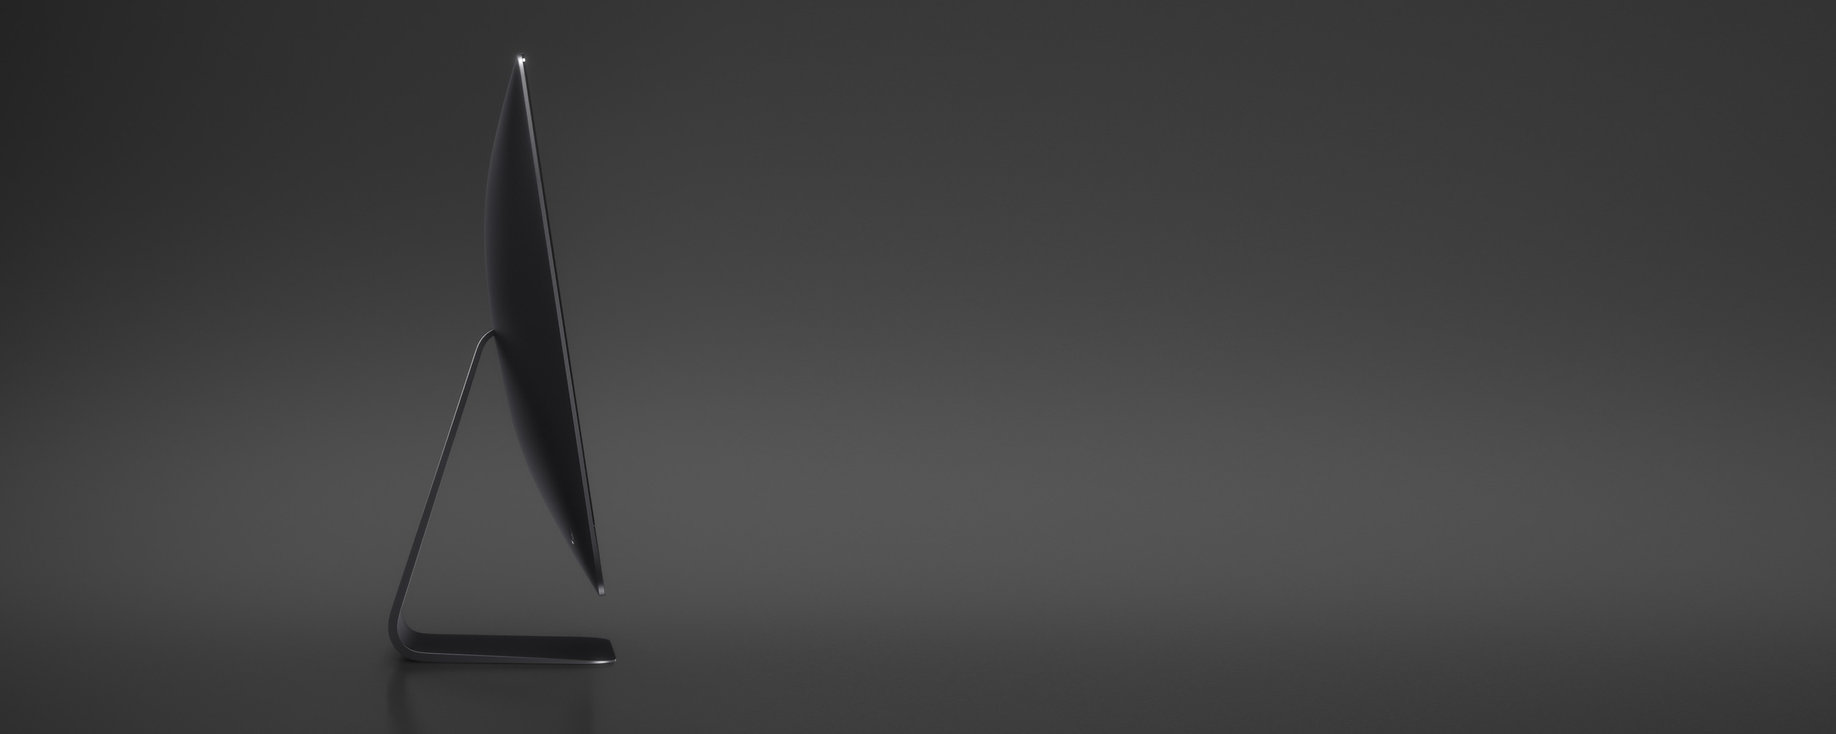 imac-pro-gallery-stretched.jpg